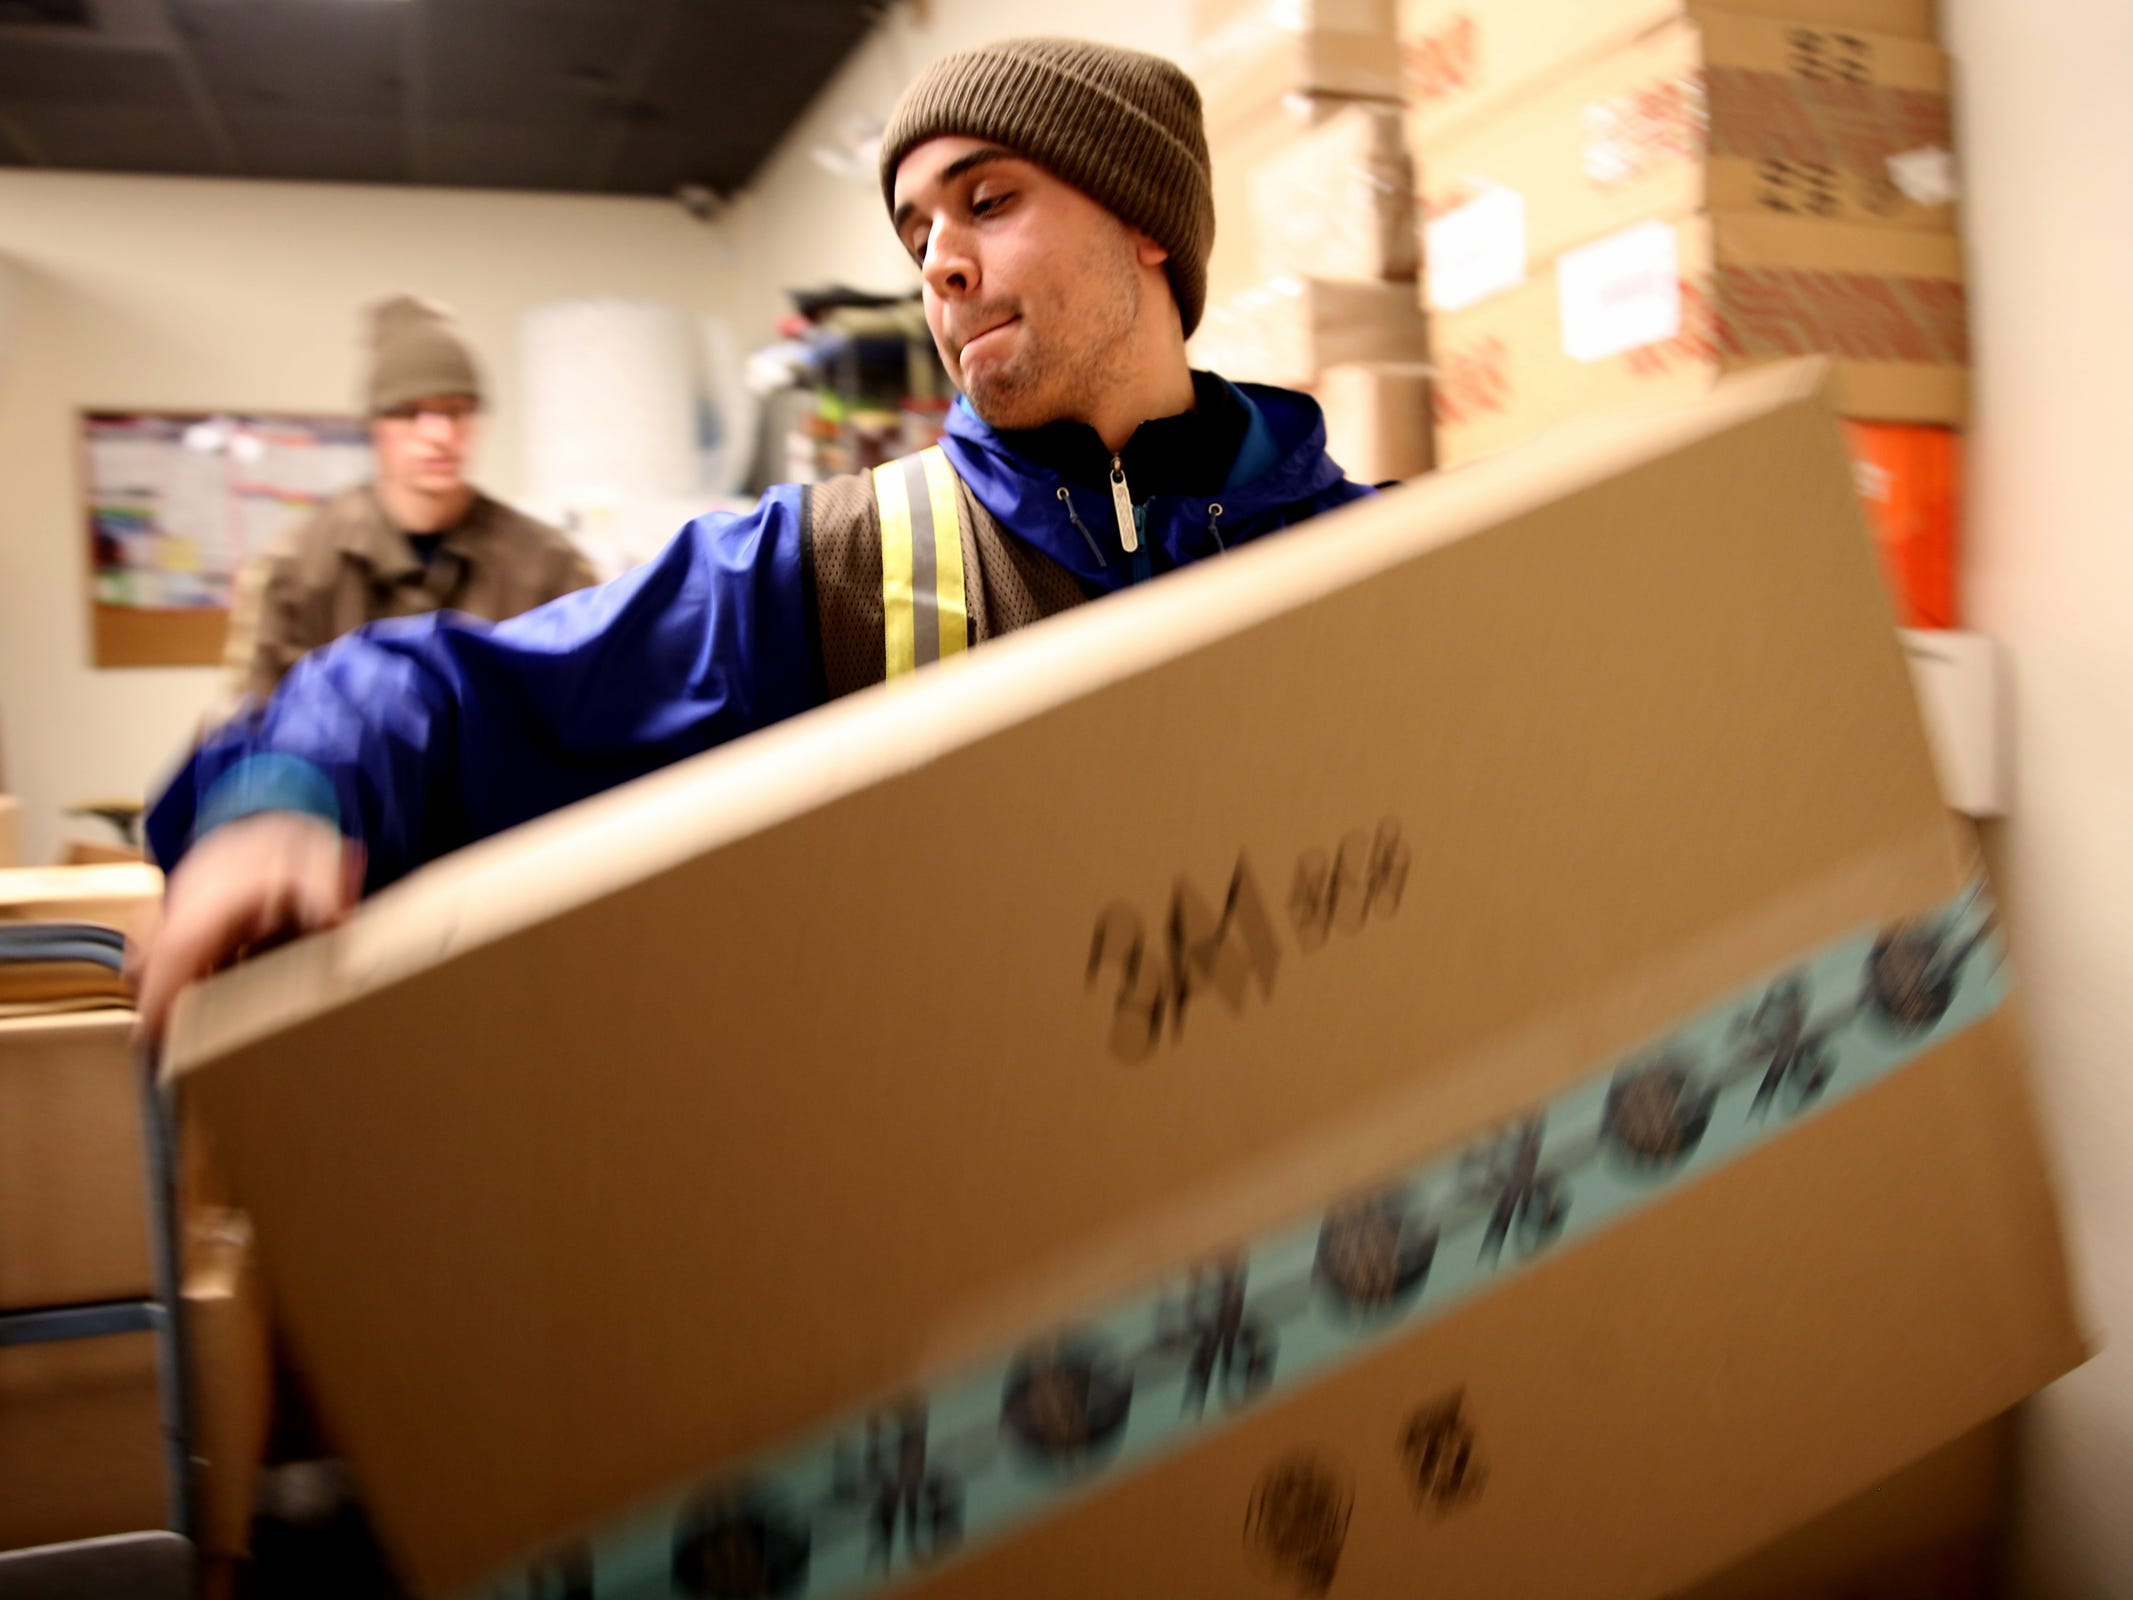 Jonnah Ferreiro, a UPS seasonal employee, grabs a package to be delivered at the UPS Store on Commercial St. SE in Salem on Tuesday, Dec. 4, 2018.